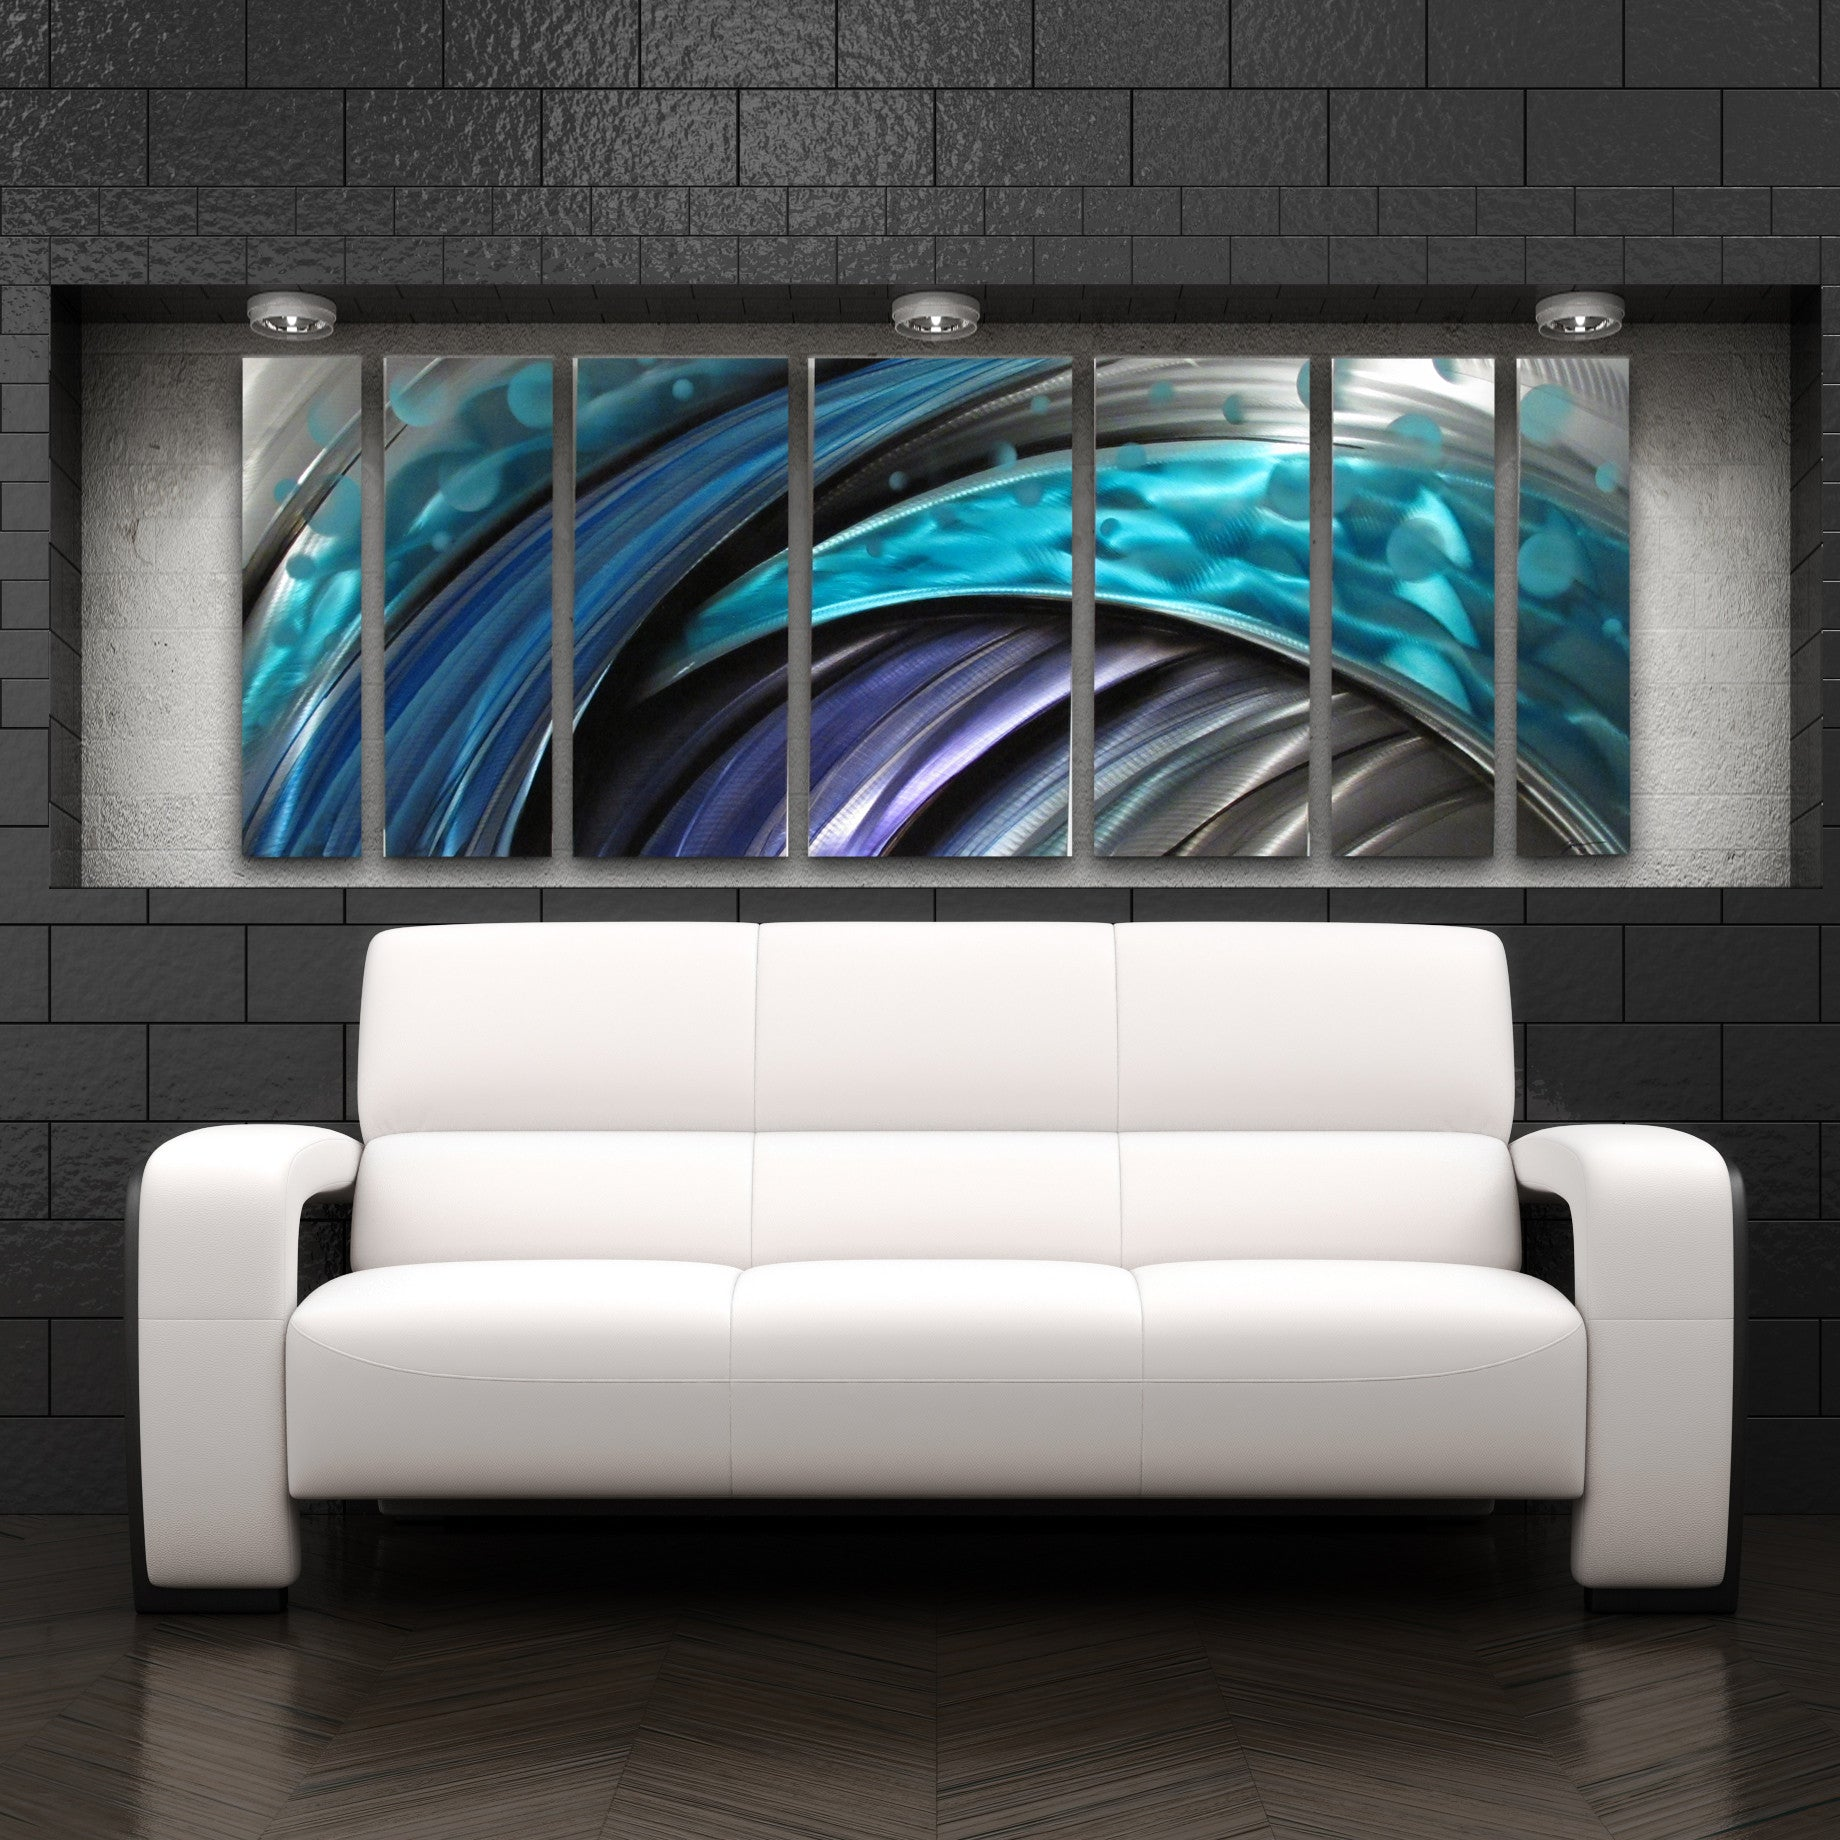 Large metal wall art dv8 studio - Contemporary wall art decor ...